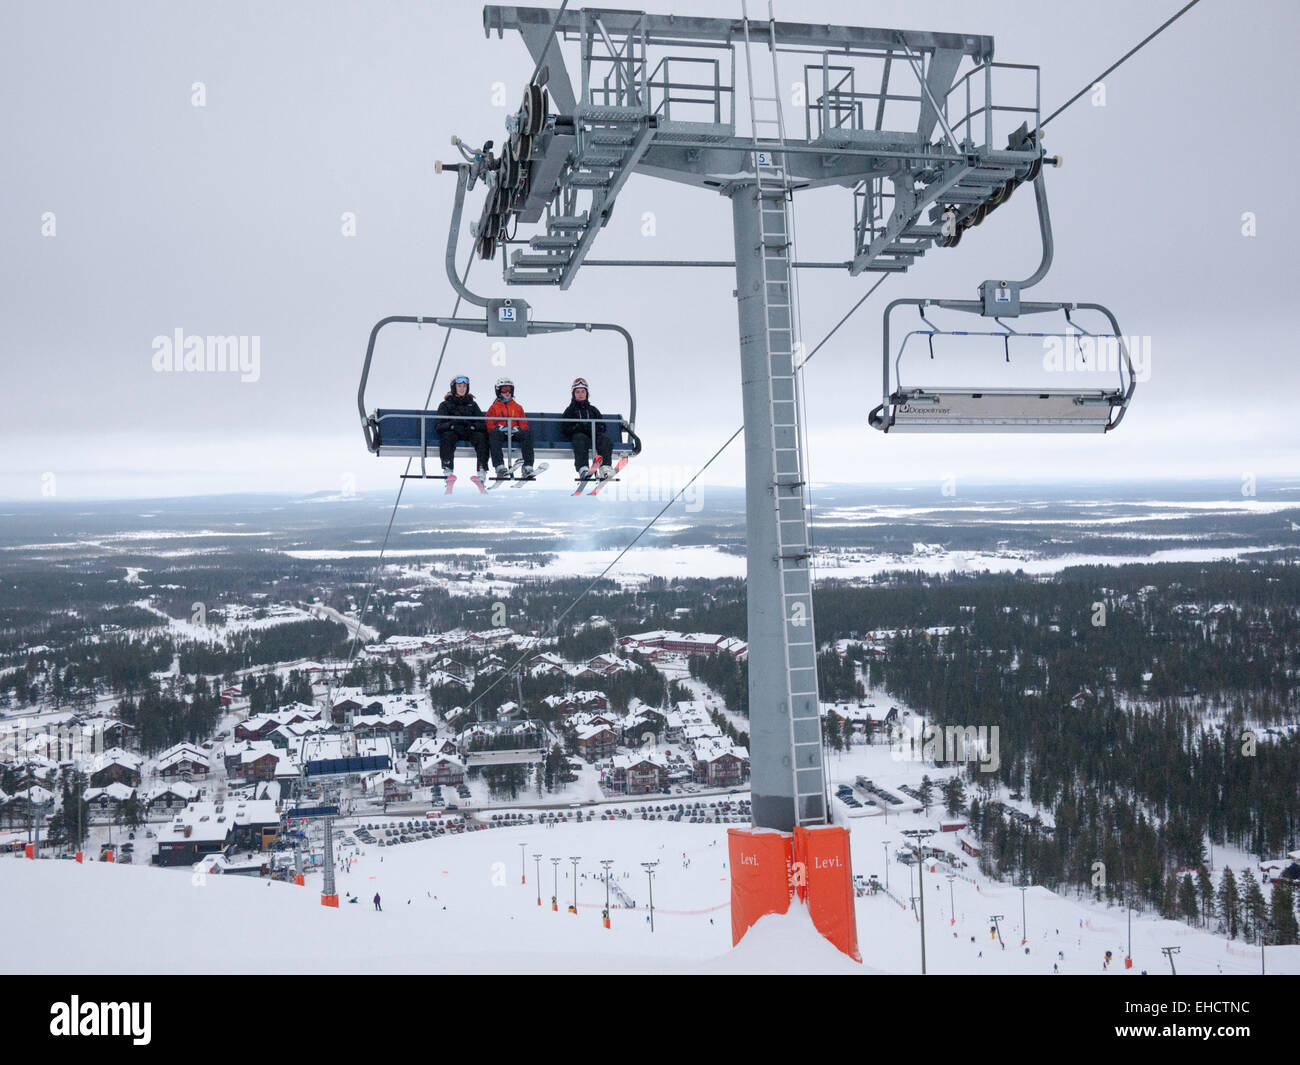 A chairlift carrying skiers up the mountain at the ski resort of levi, Lapland Finland in grey overcast conditions - Stock Image